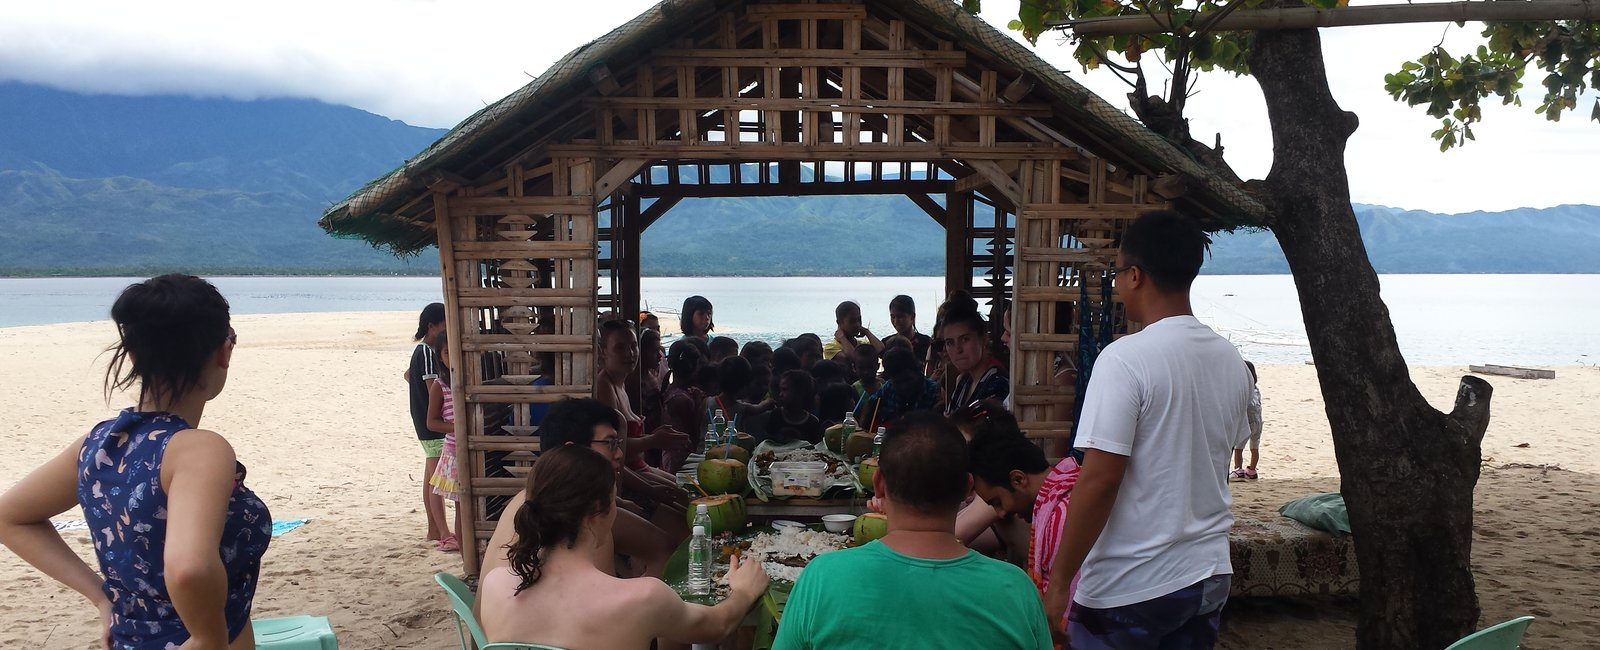 Louise Davidson - Nursing Electives in Iloilo, the Philippines